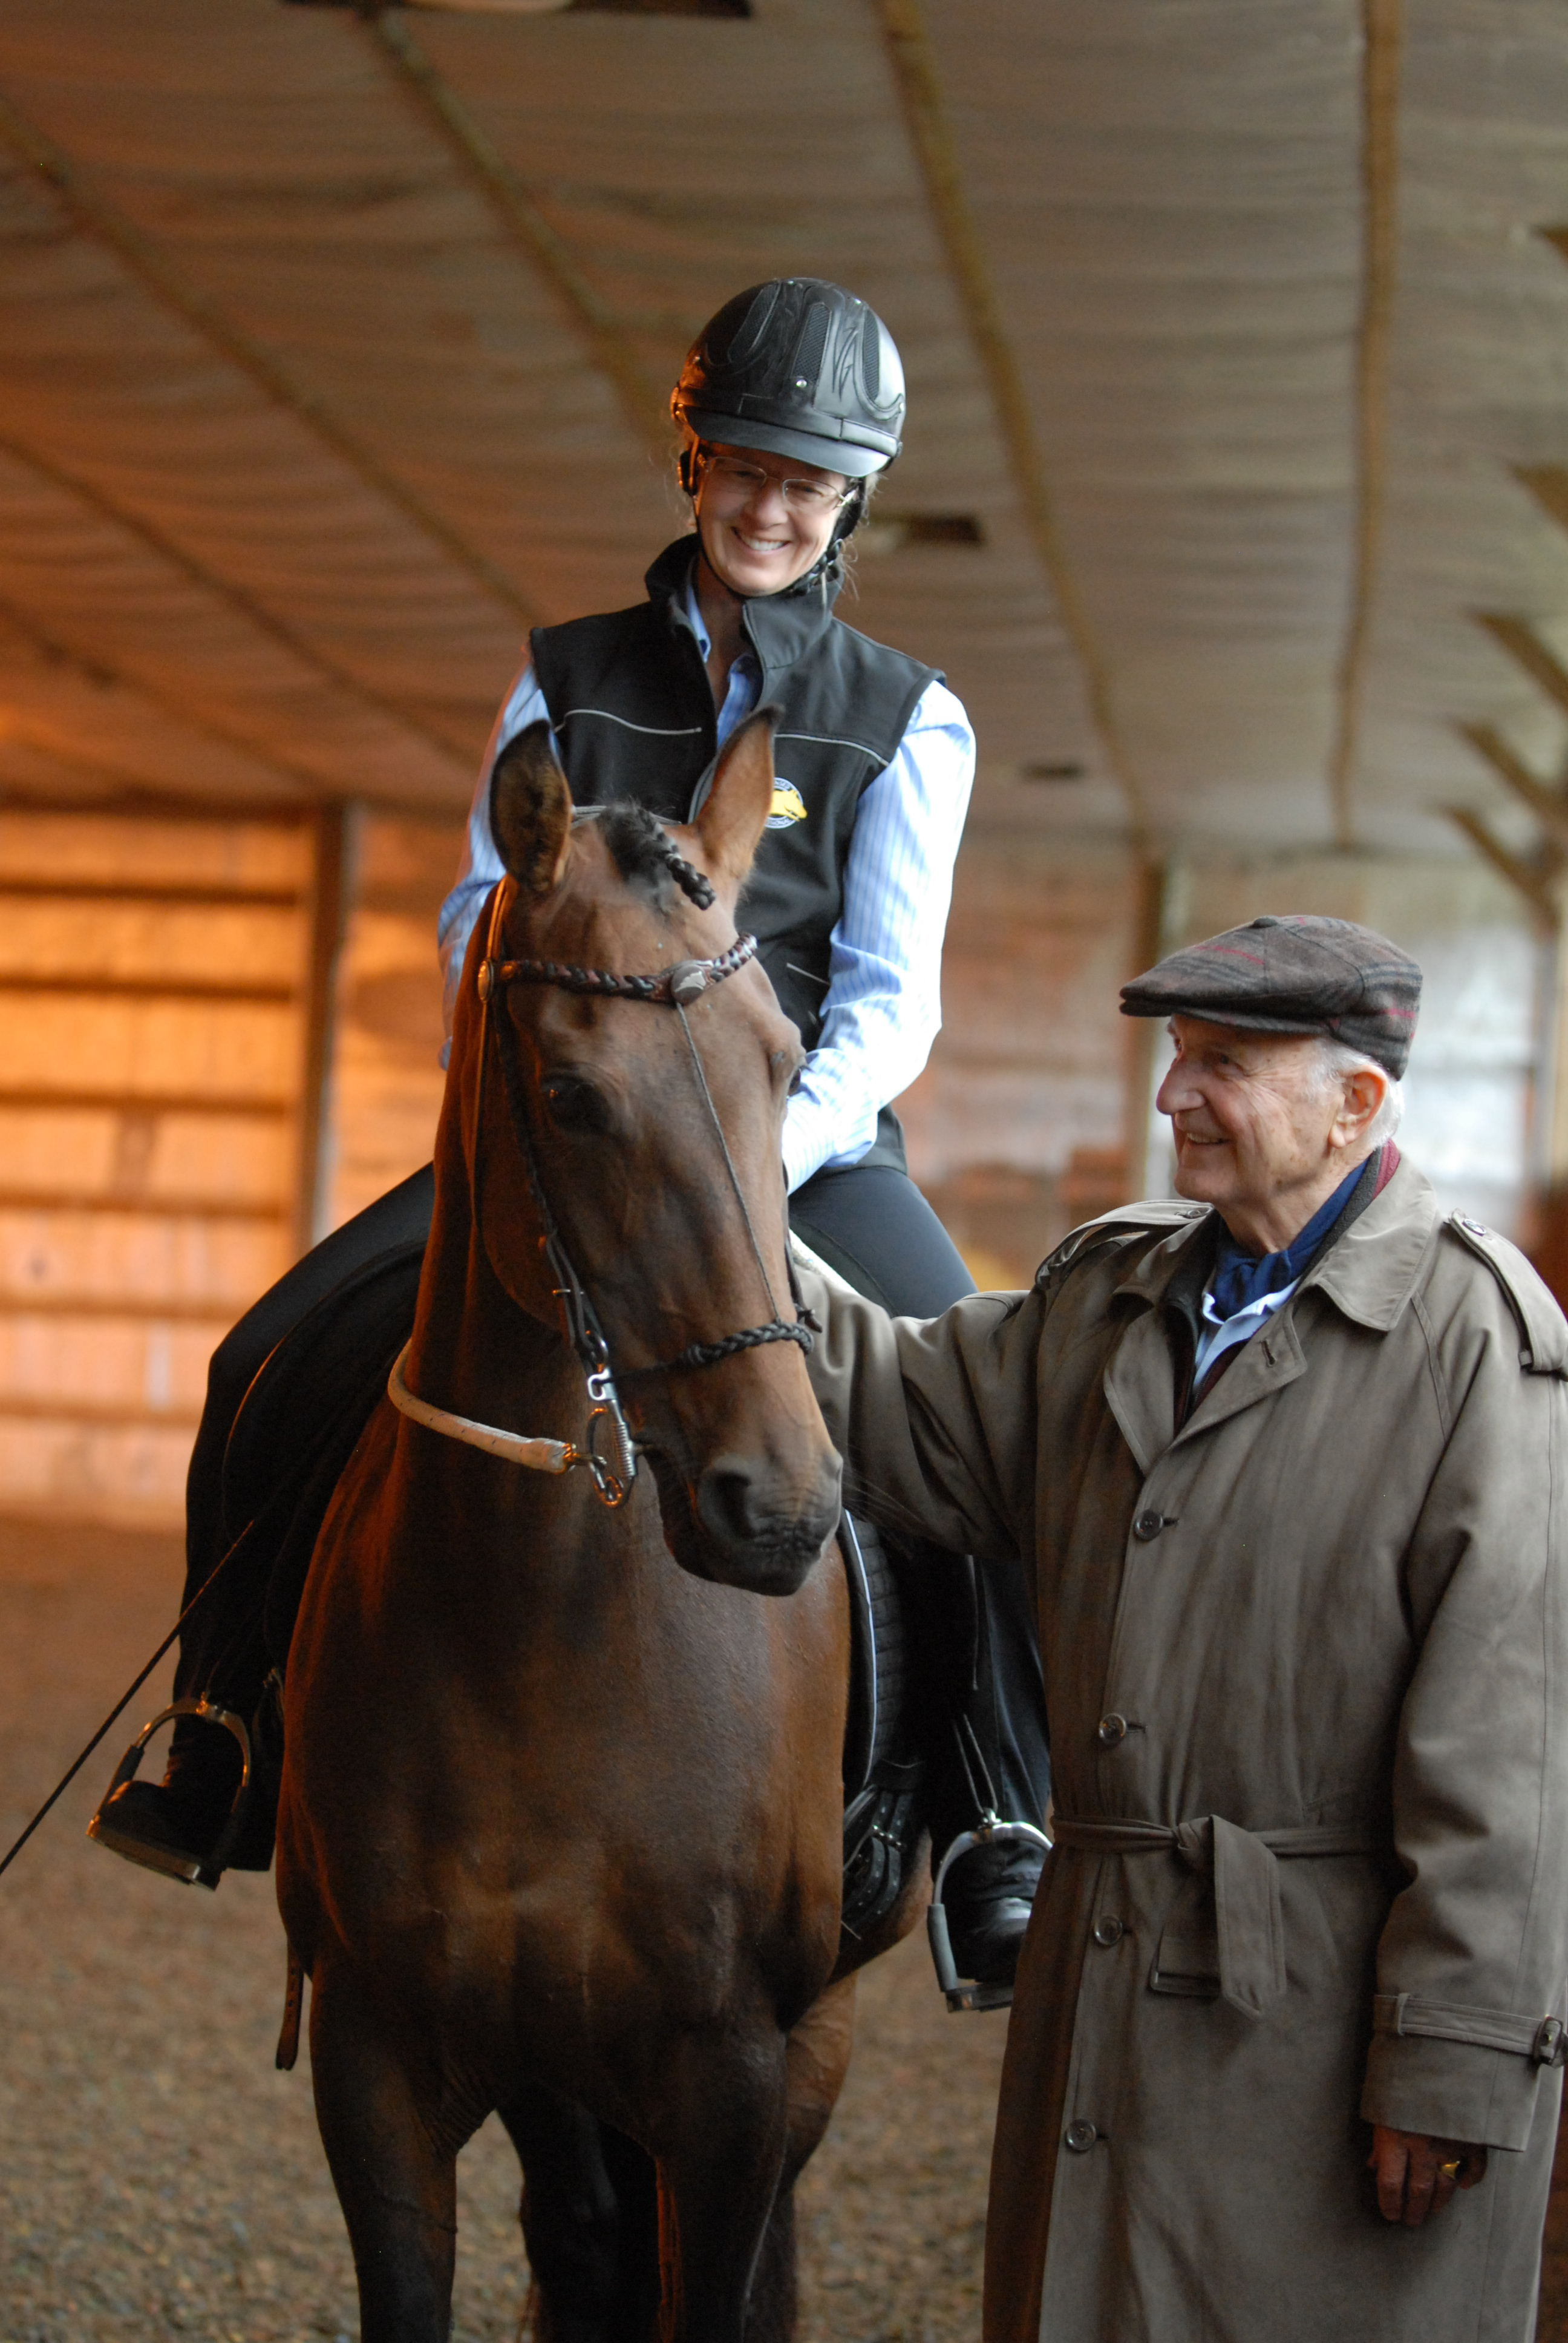 A 2010 dressage lesson with Walter Zettl at Houghton College, NY